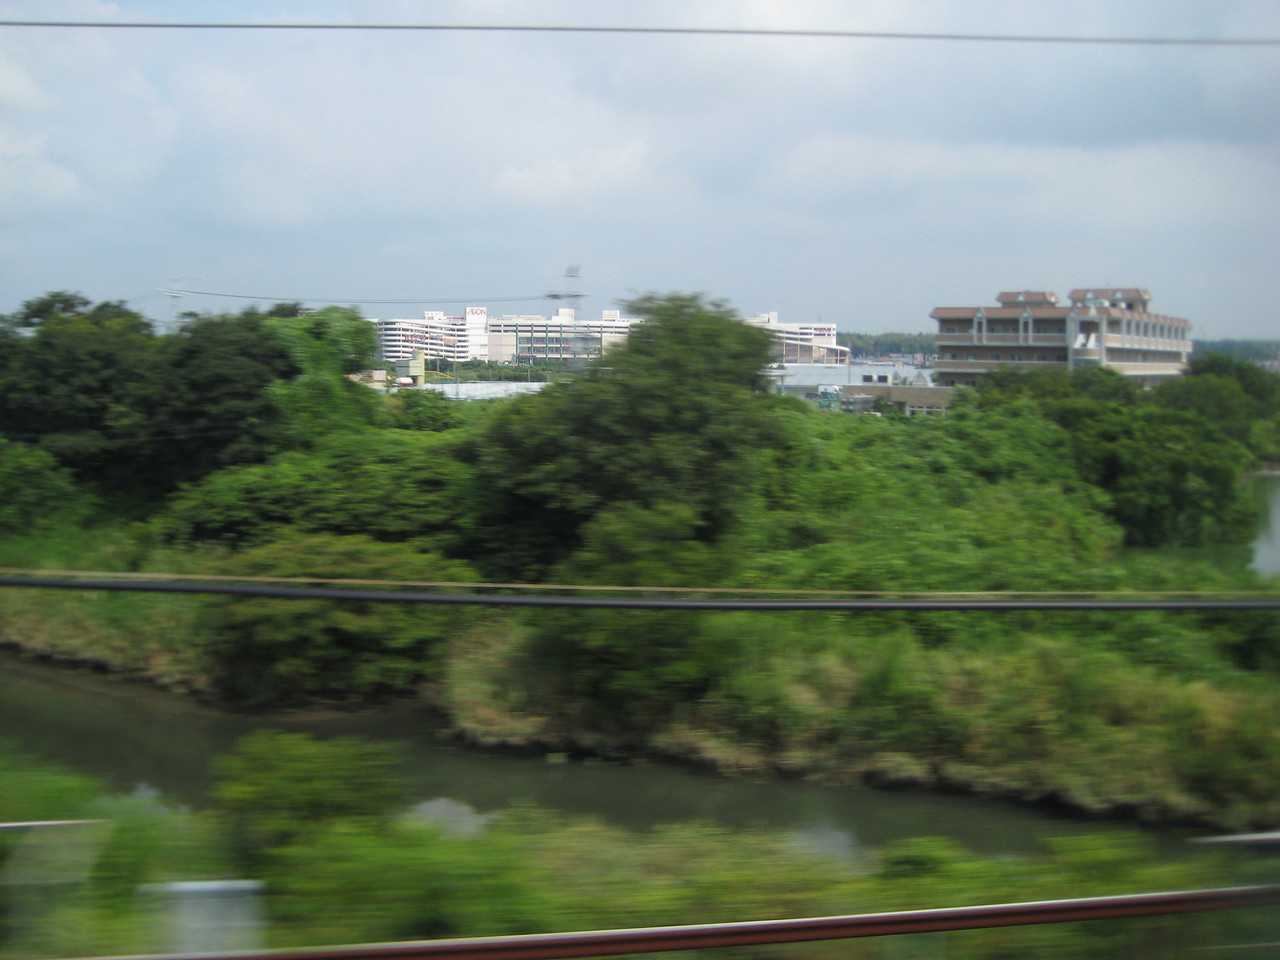 If you look at the map above, these are a few photos taken about mid-way through the trip, right arown Hamamatsu